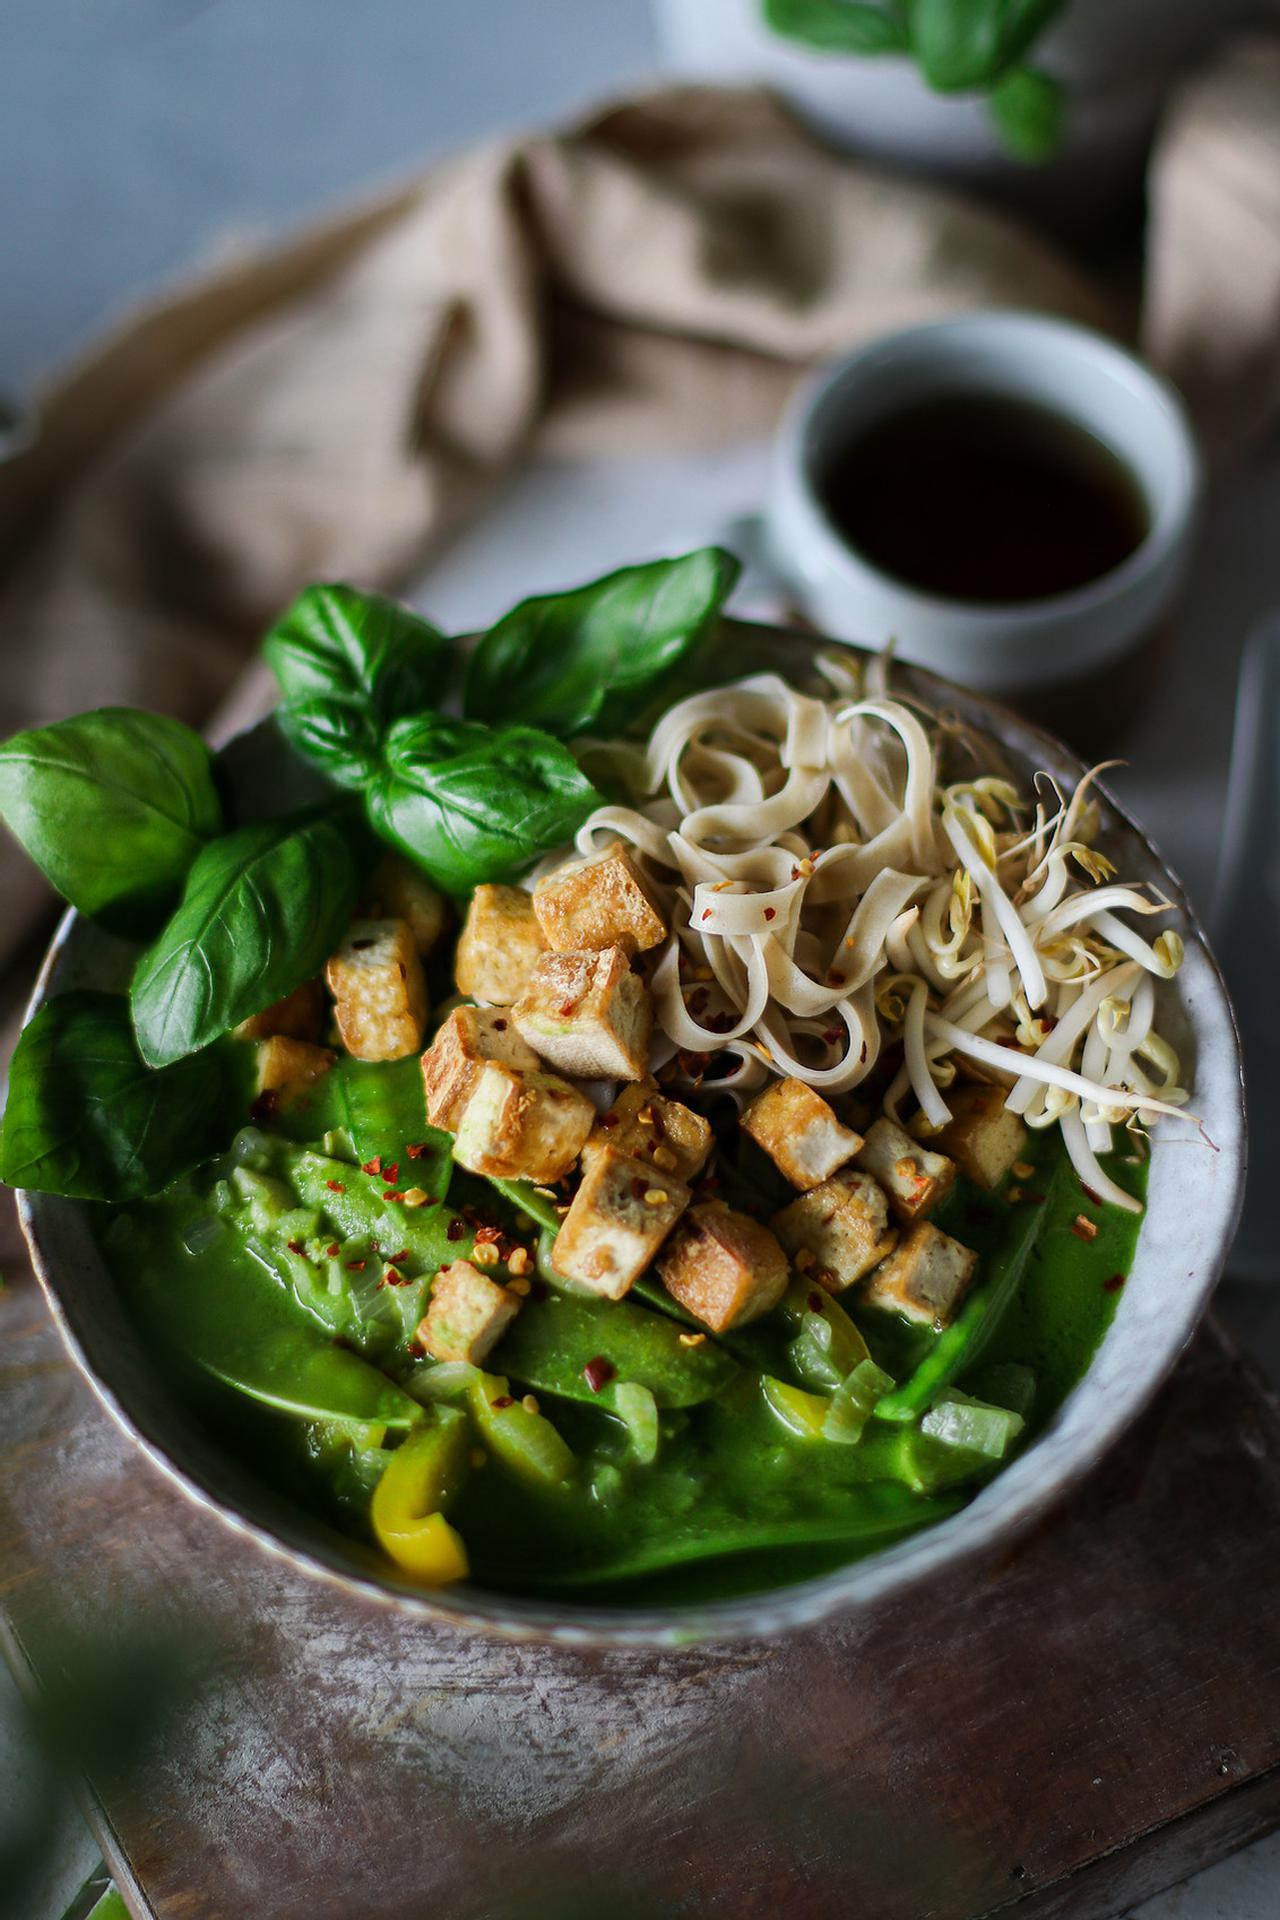 Main image of Coconut Thai Green Curry Noodle Soup